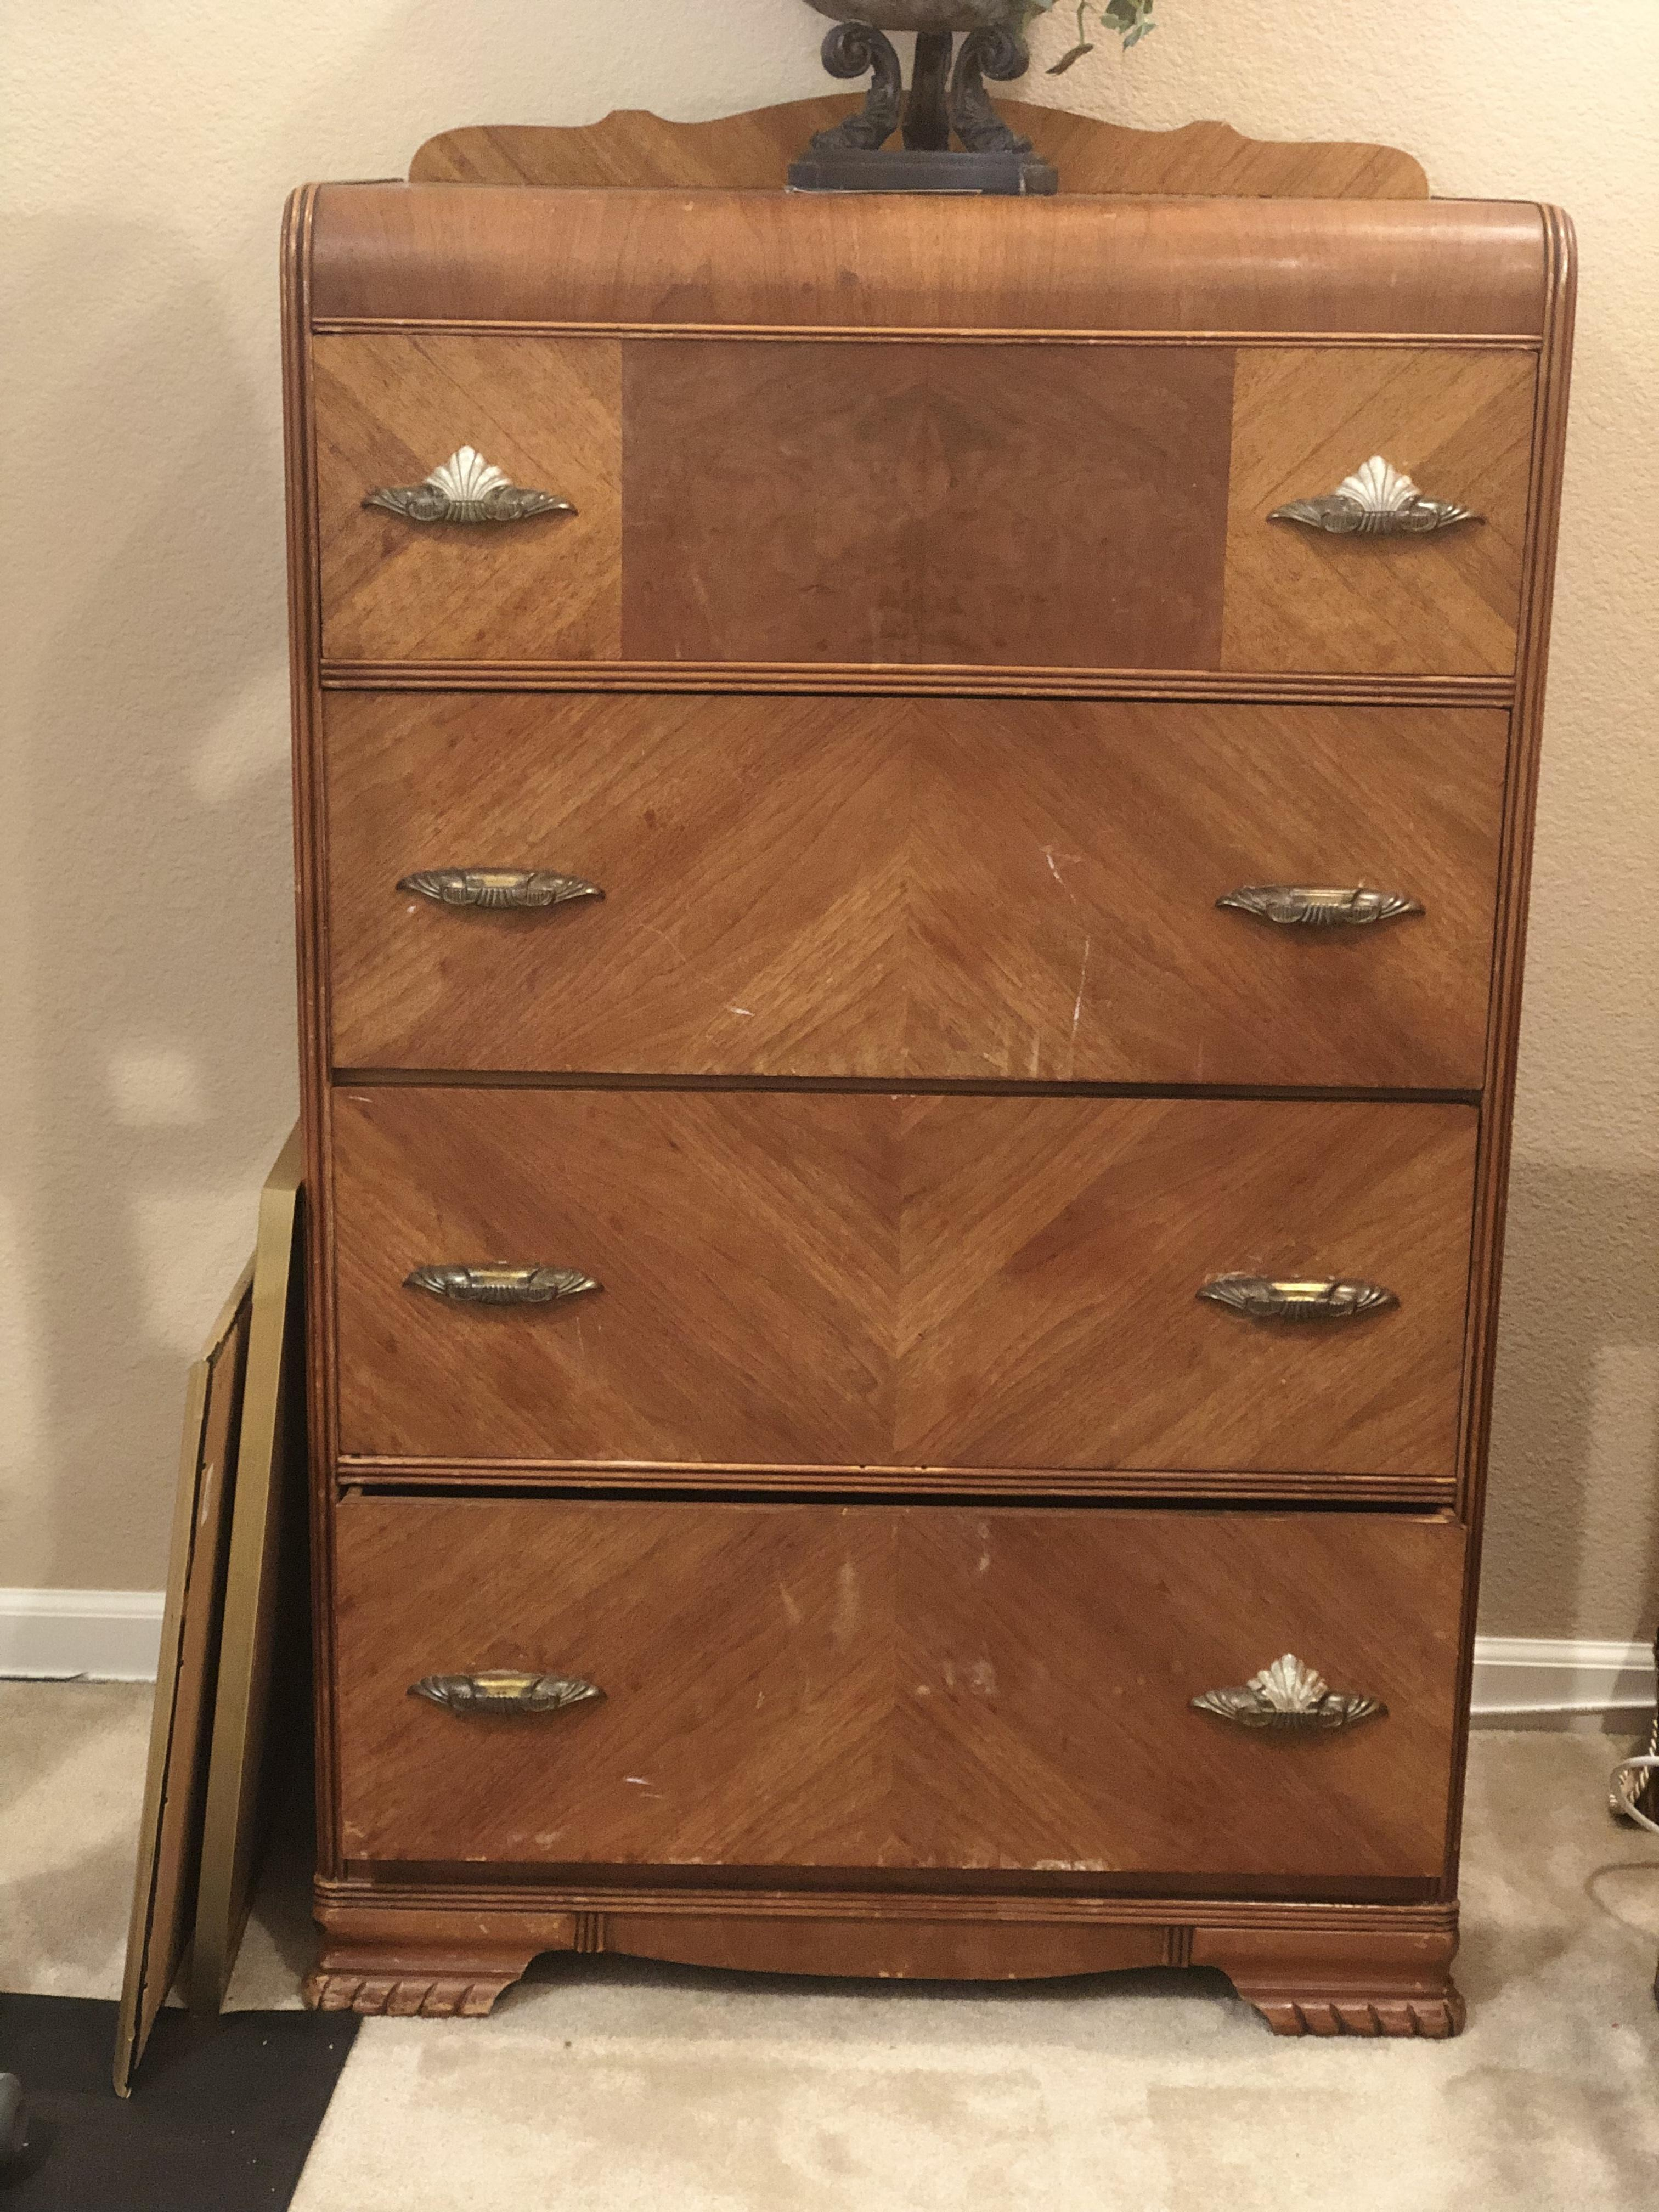 Art Deco Waterfall-Style Dresser appraisal